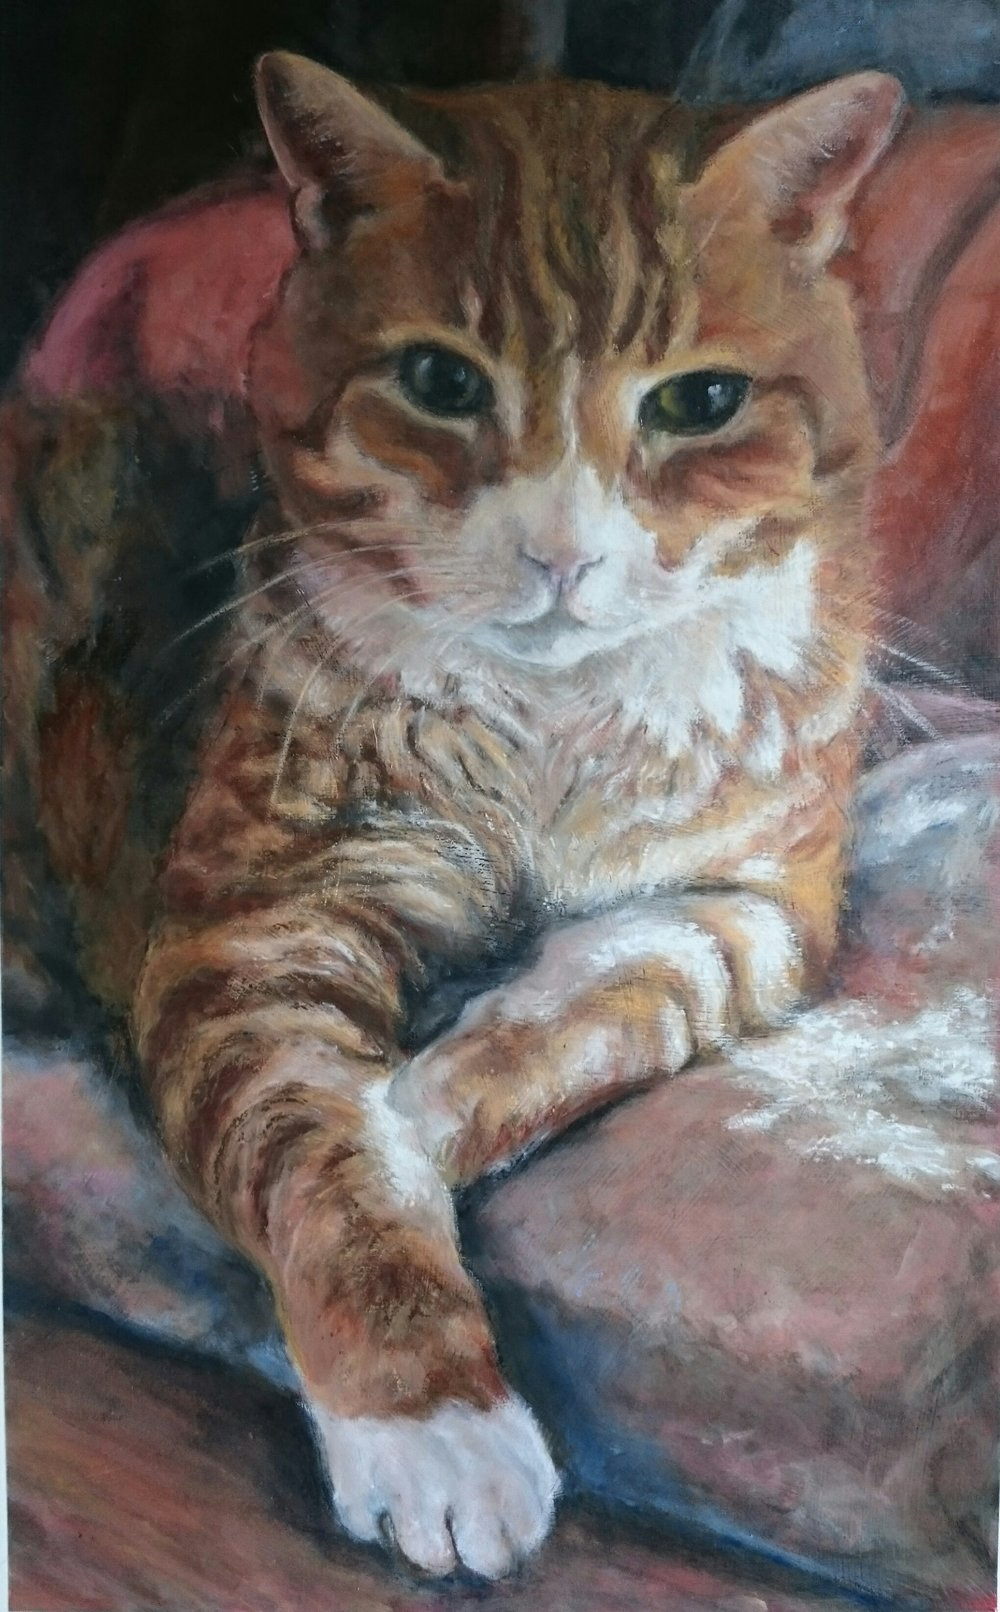 King Kahuna. Acrylics and oil pastel on paper. This was a combined communication and portrait commission. I was asked to chat with Kahuna as he approached the end of his earthly life. The guardian of this wonderful being has now written a book about her experience.   Kahuna, The Cat Who Didn't Die by Francesca Cassini